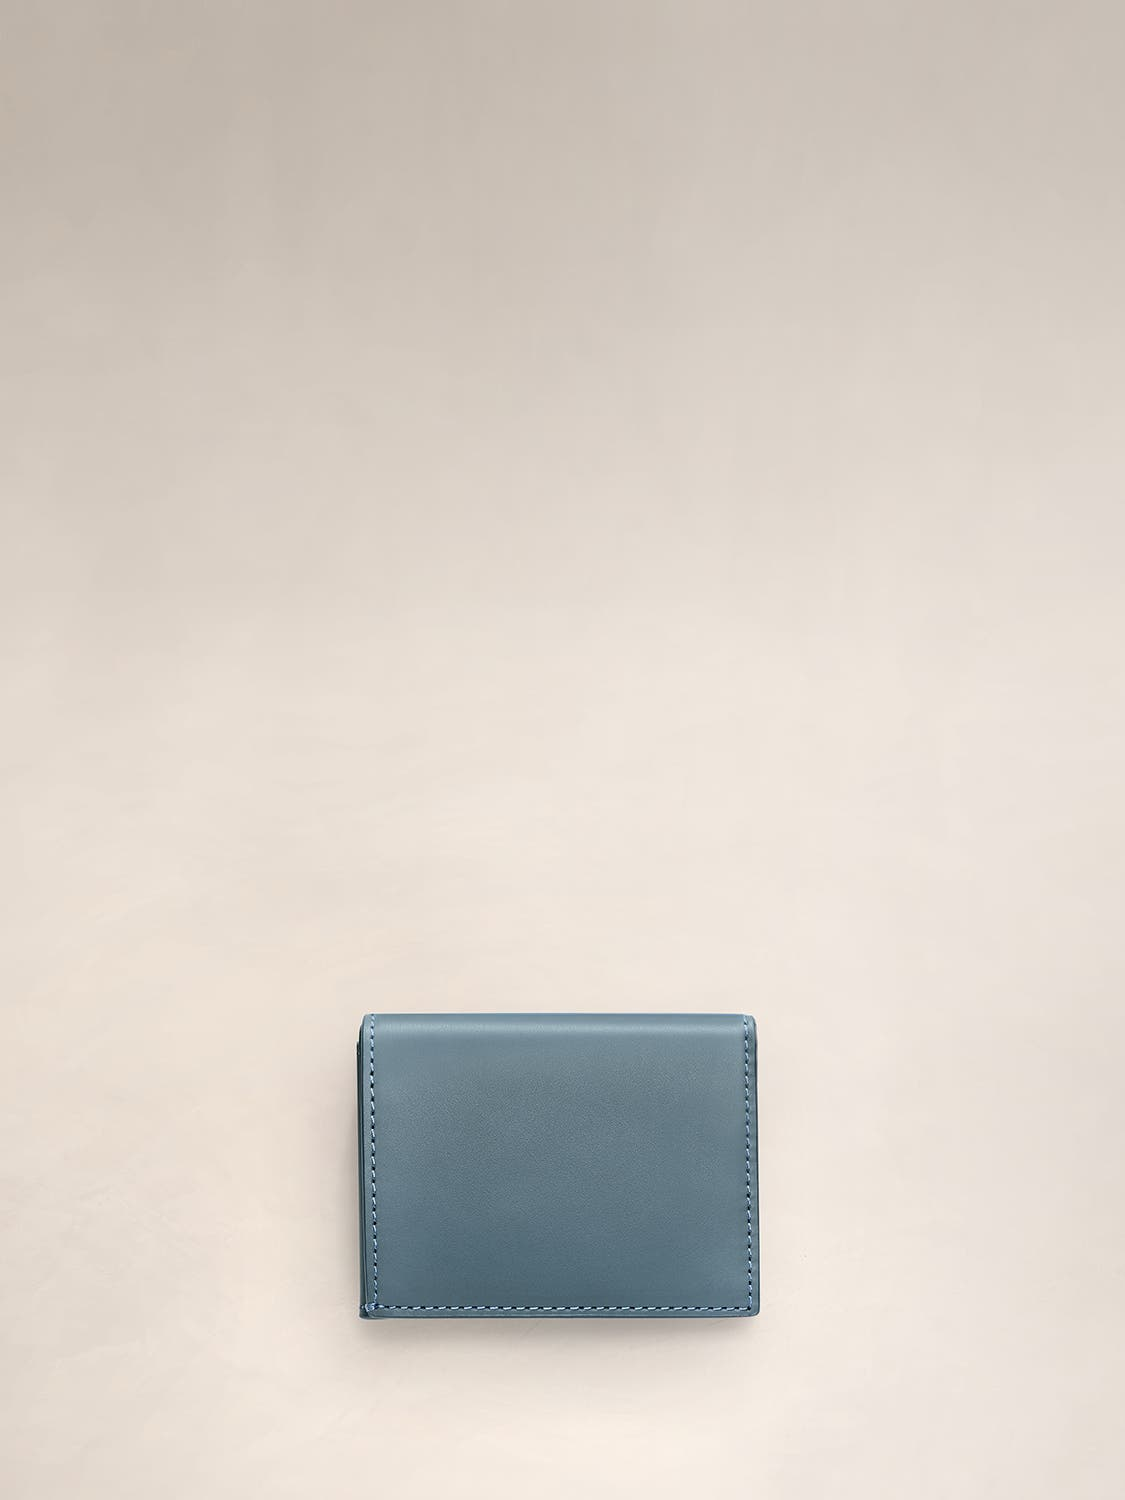 A coast L-Fold wallet for travel.